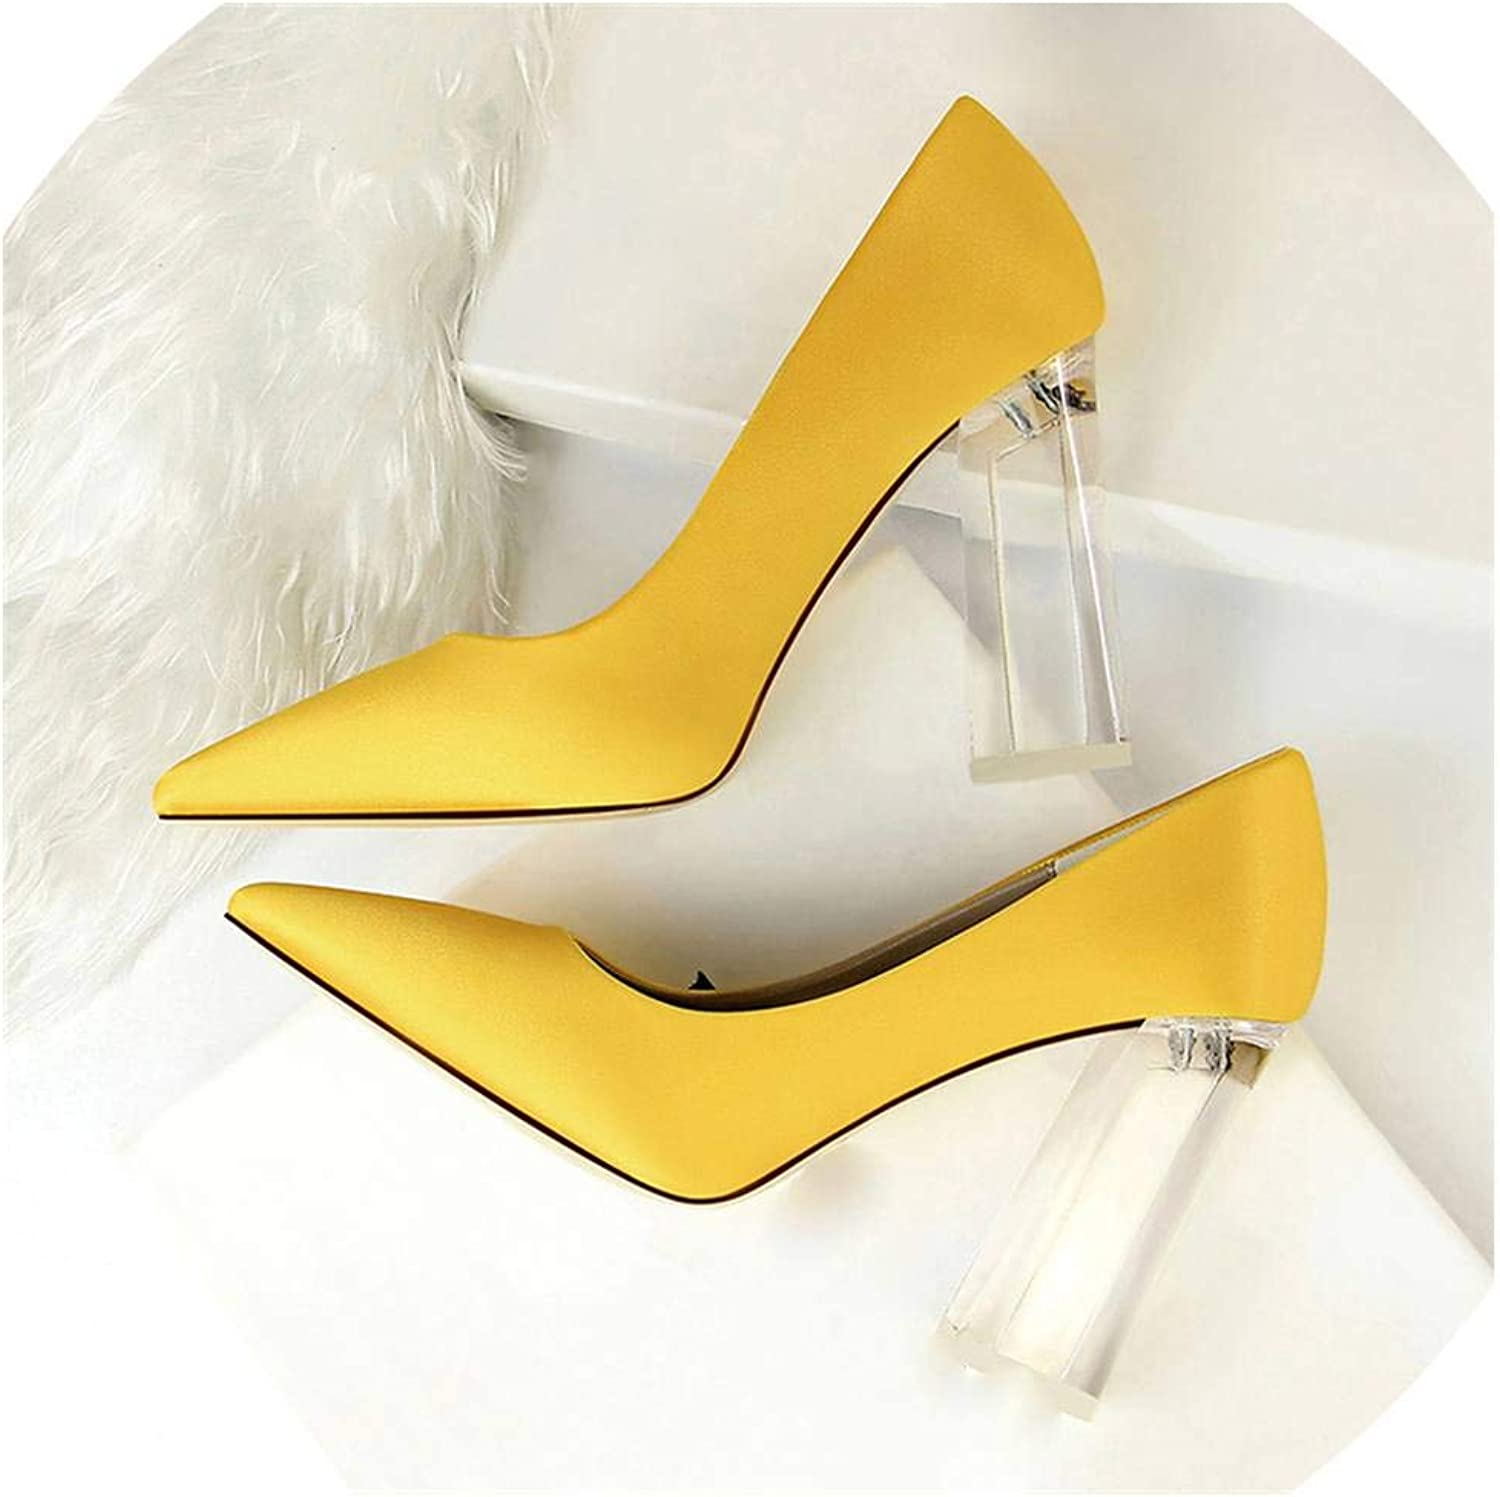 Fan-Shu Pointed Toe Transparent Block High Heels Stain Yellow Pumps Women Lady Office Party shoes